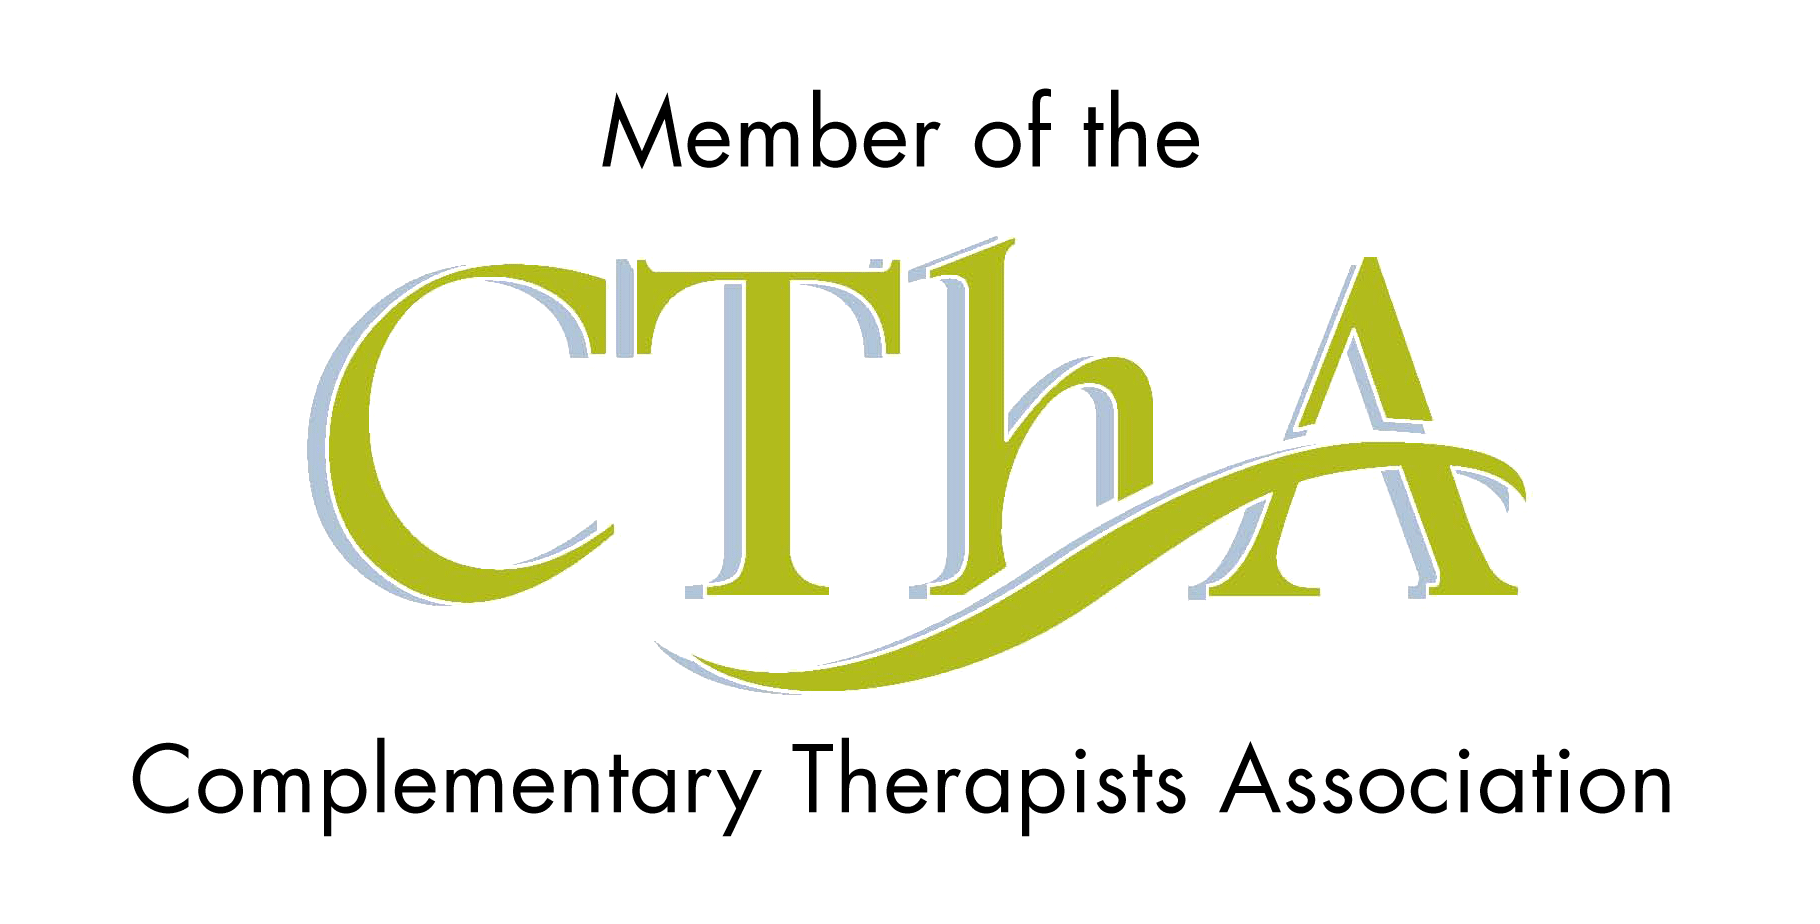 CThA_Member.png